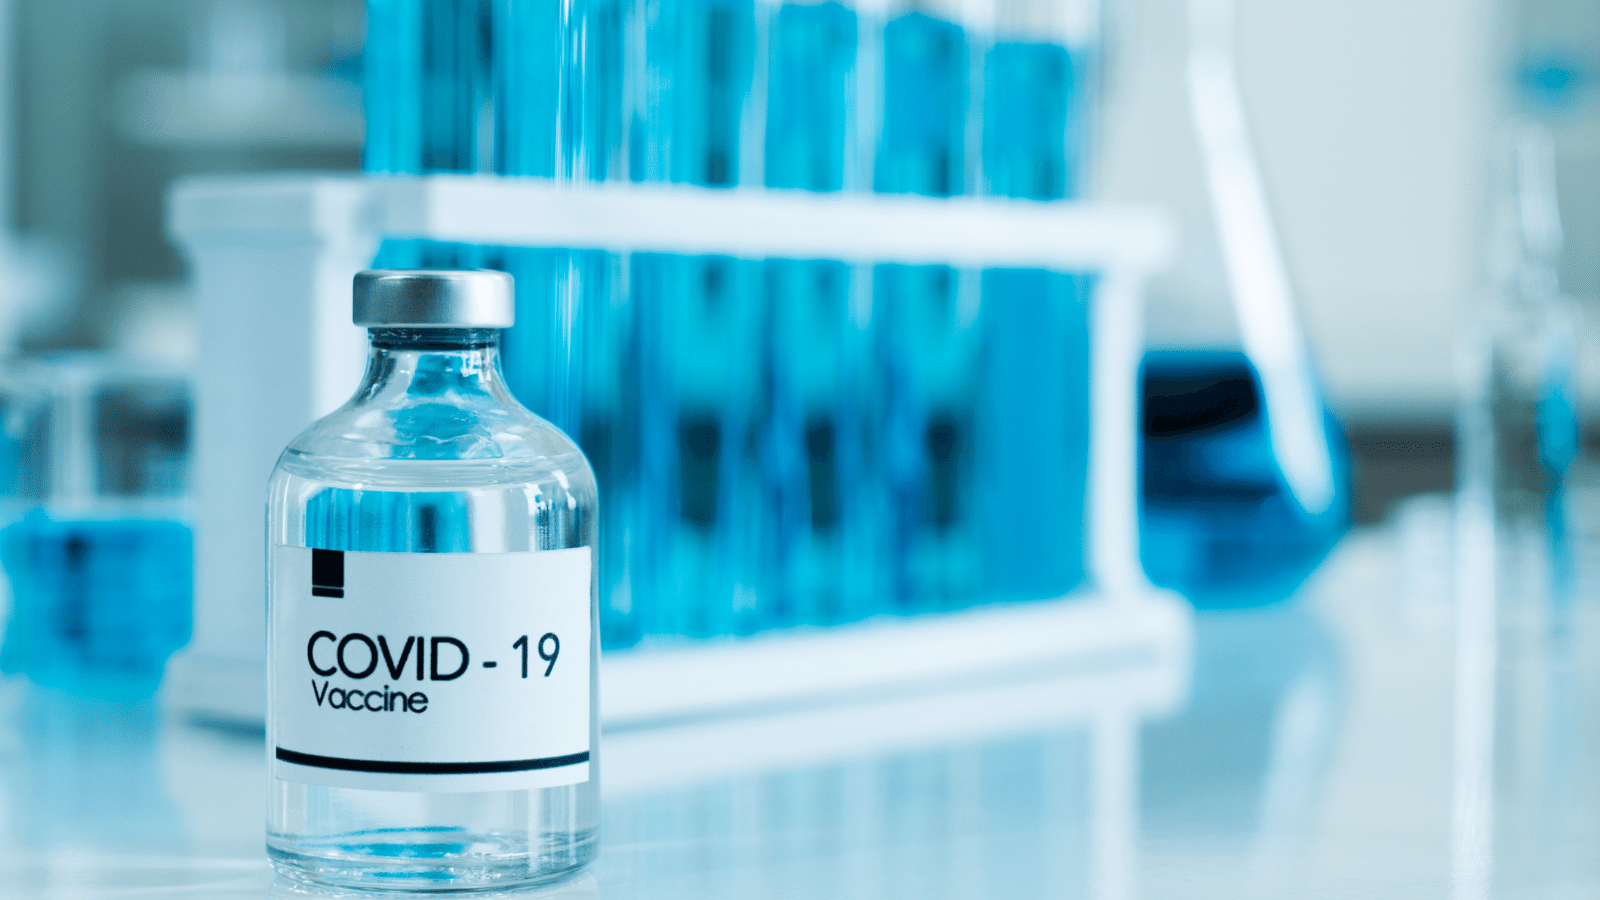 Covid-19 Vaccines: What You Need to Know